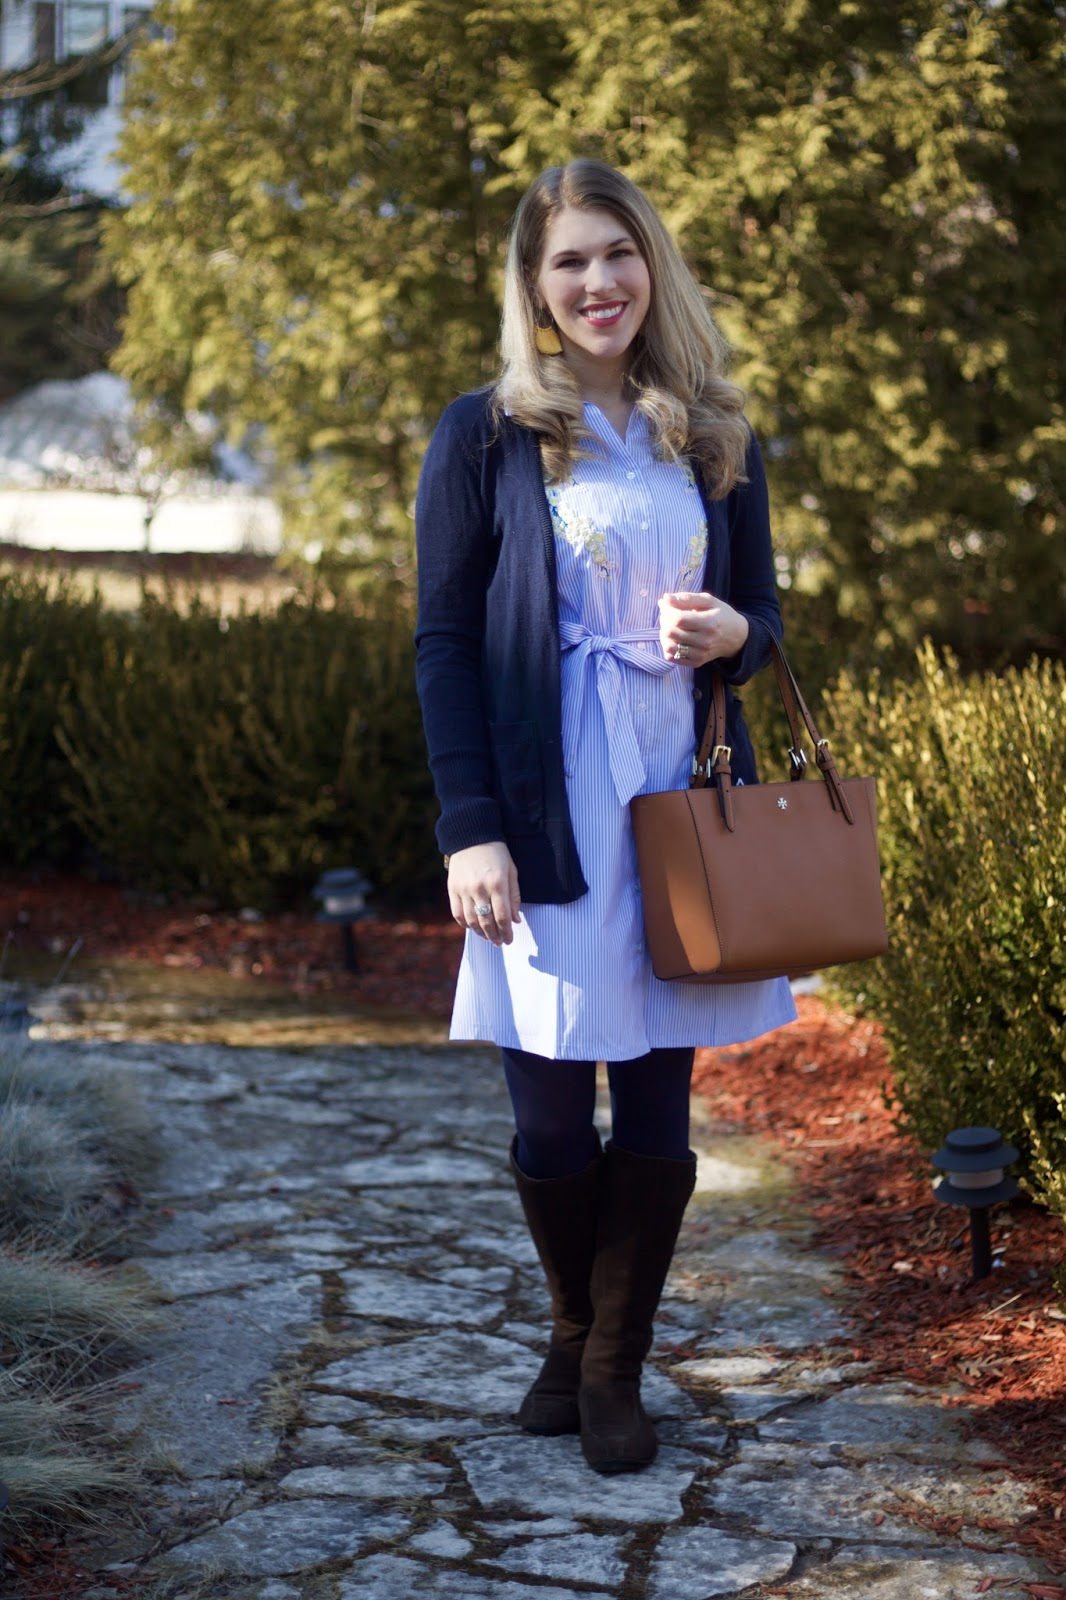 embroidered pinstripe dress, navy cardigan, brown suede riding boots, yellow tassel earrings